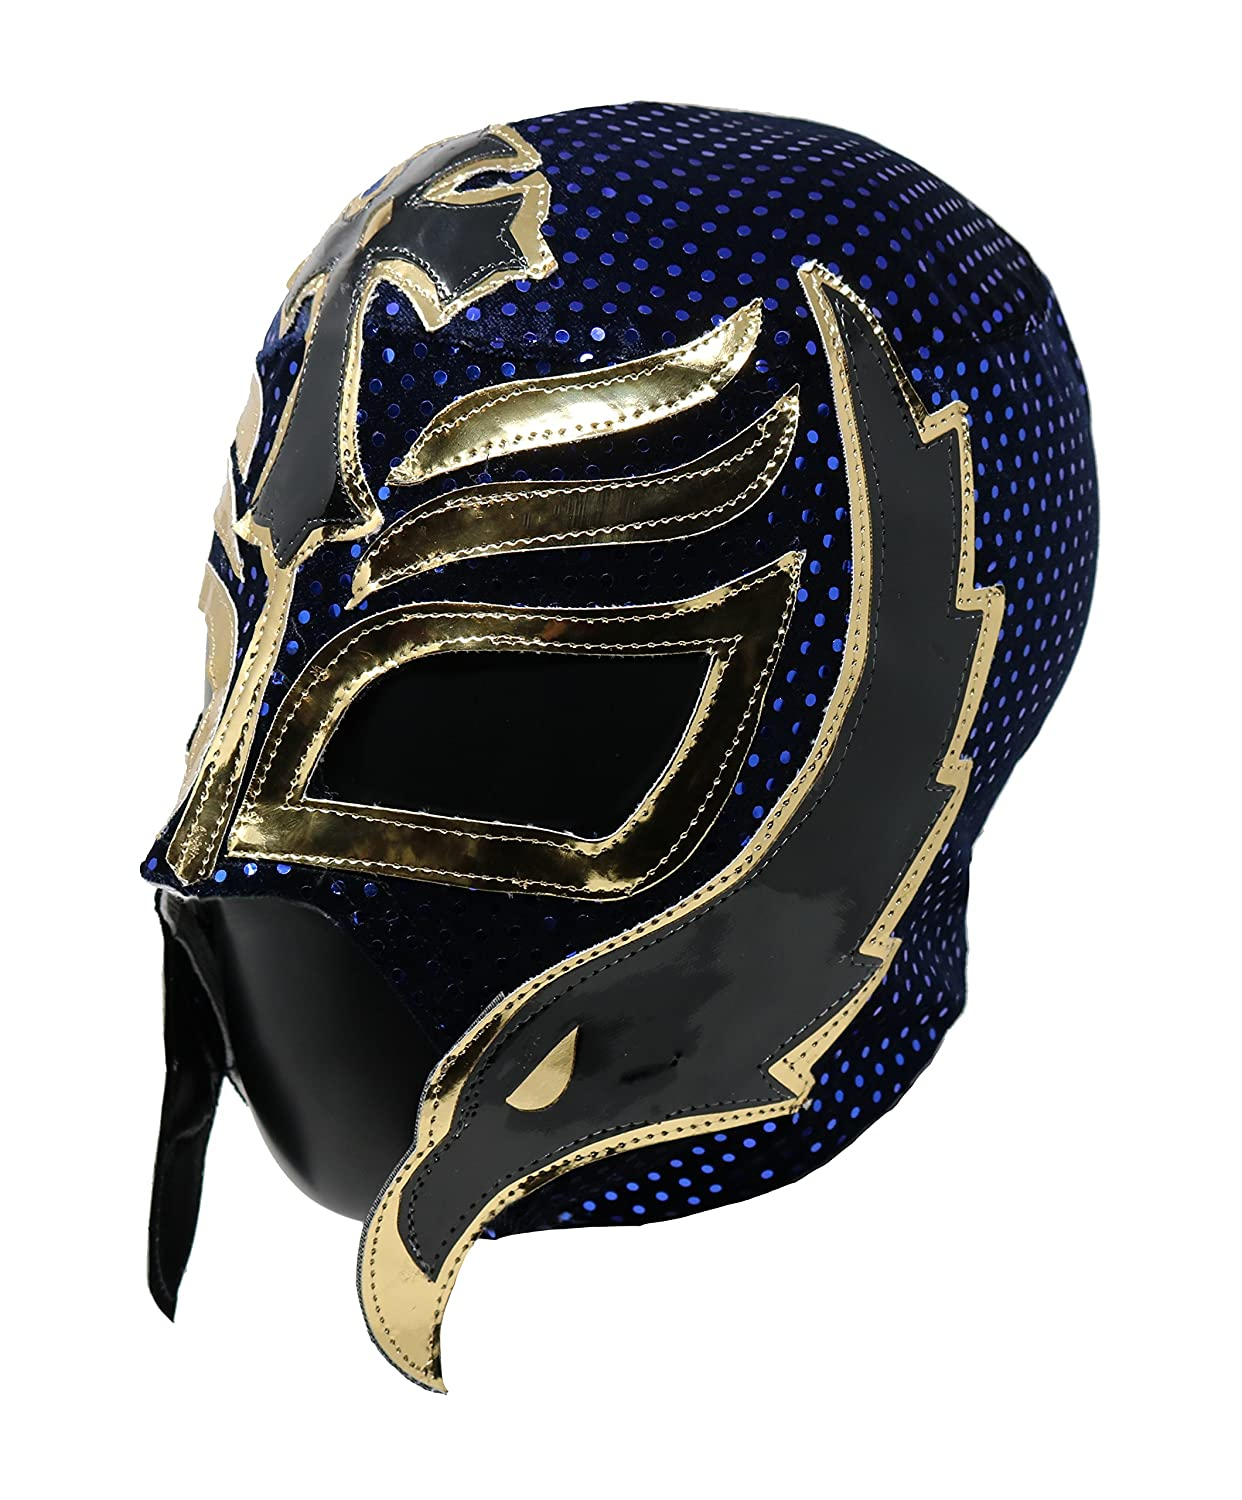 Amazon.com: Rey Mysterio Professional Lucha Libre Wrestling Mask. Mascara Profesional de Lucha Libre (Black/Orange): Clothing